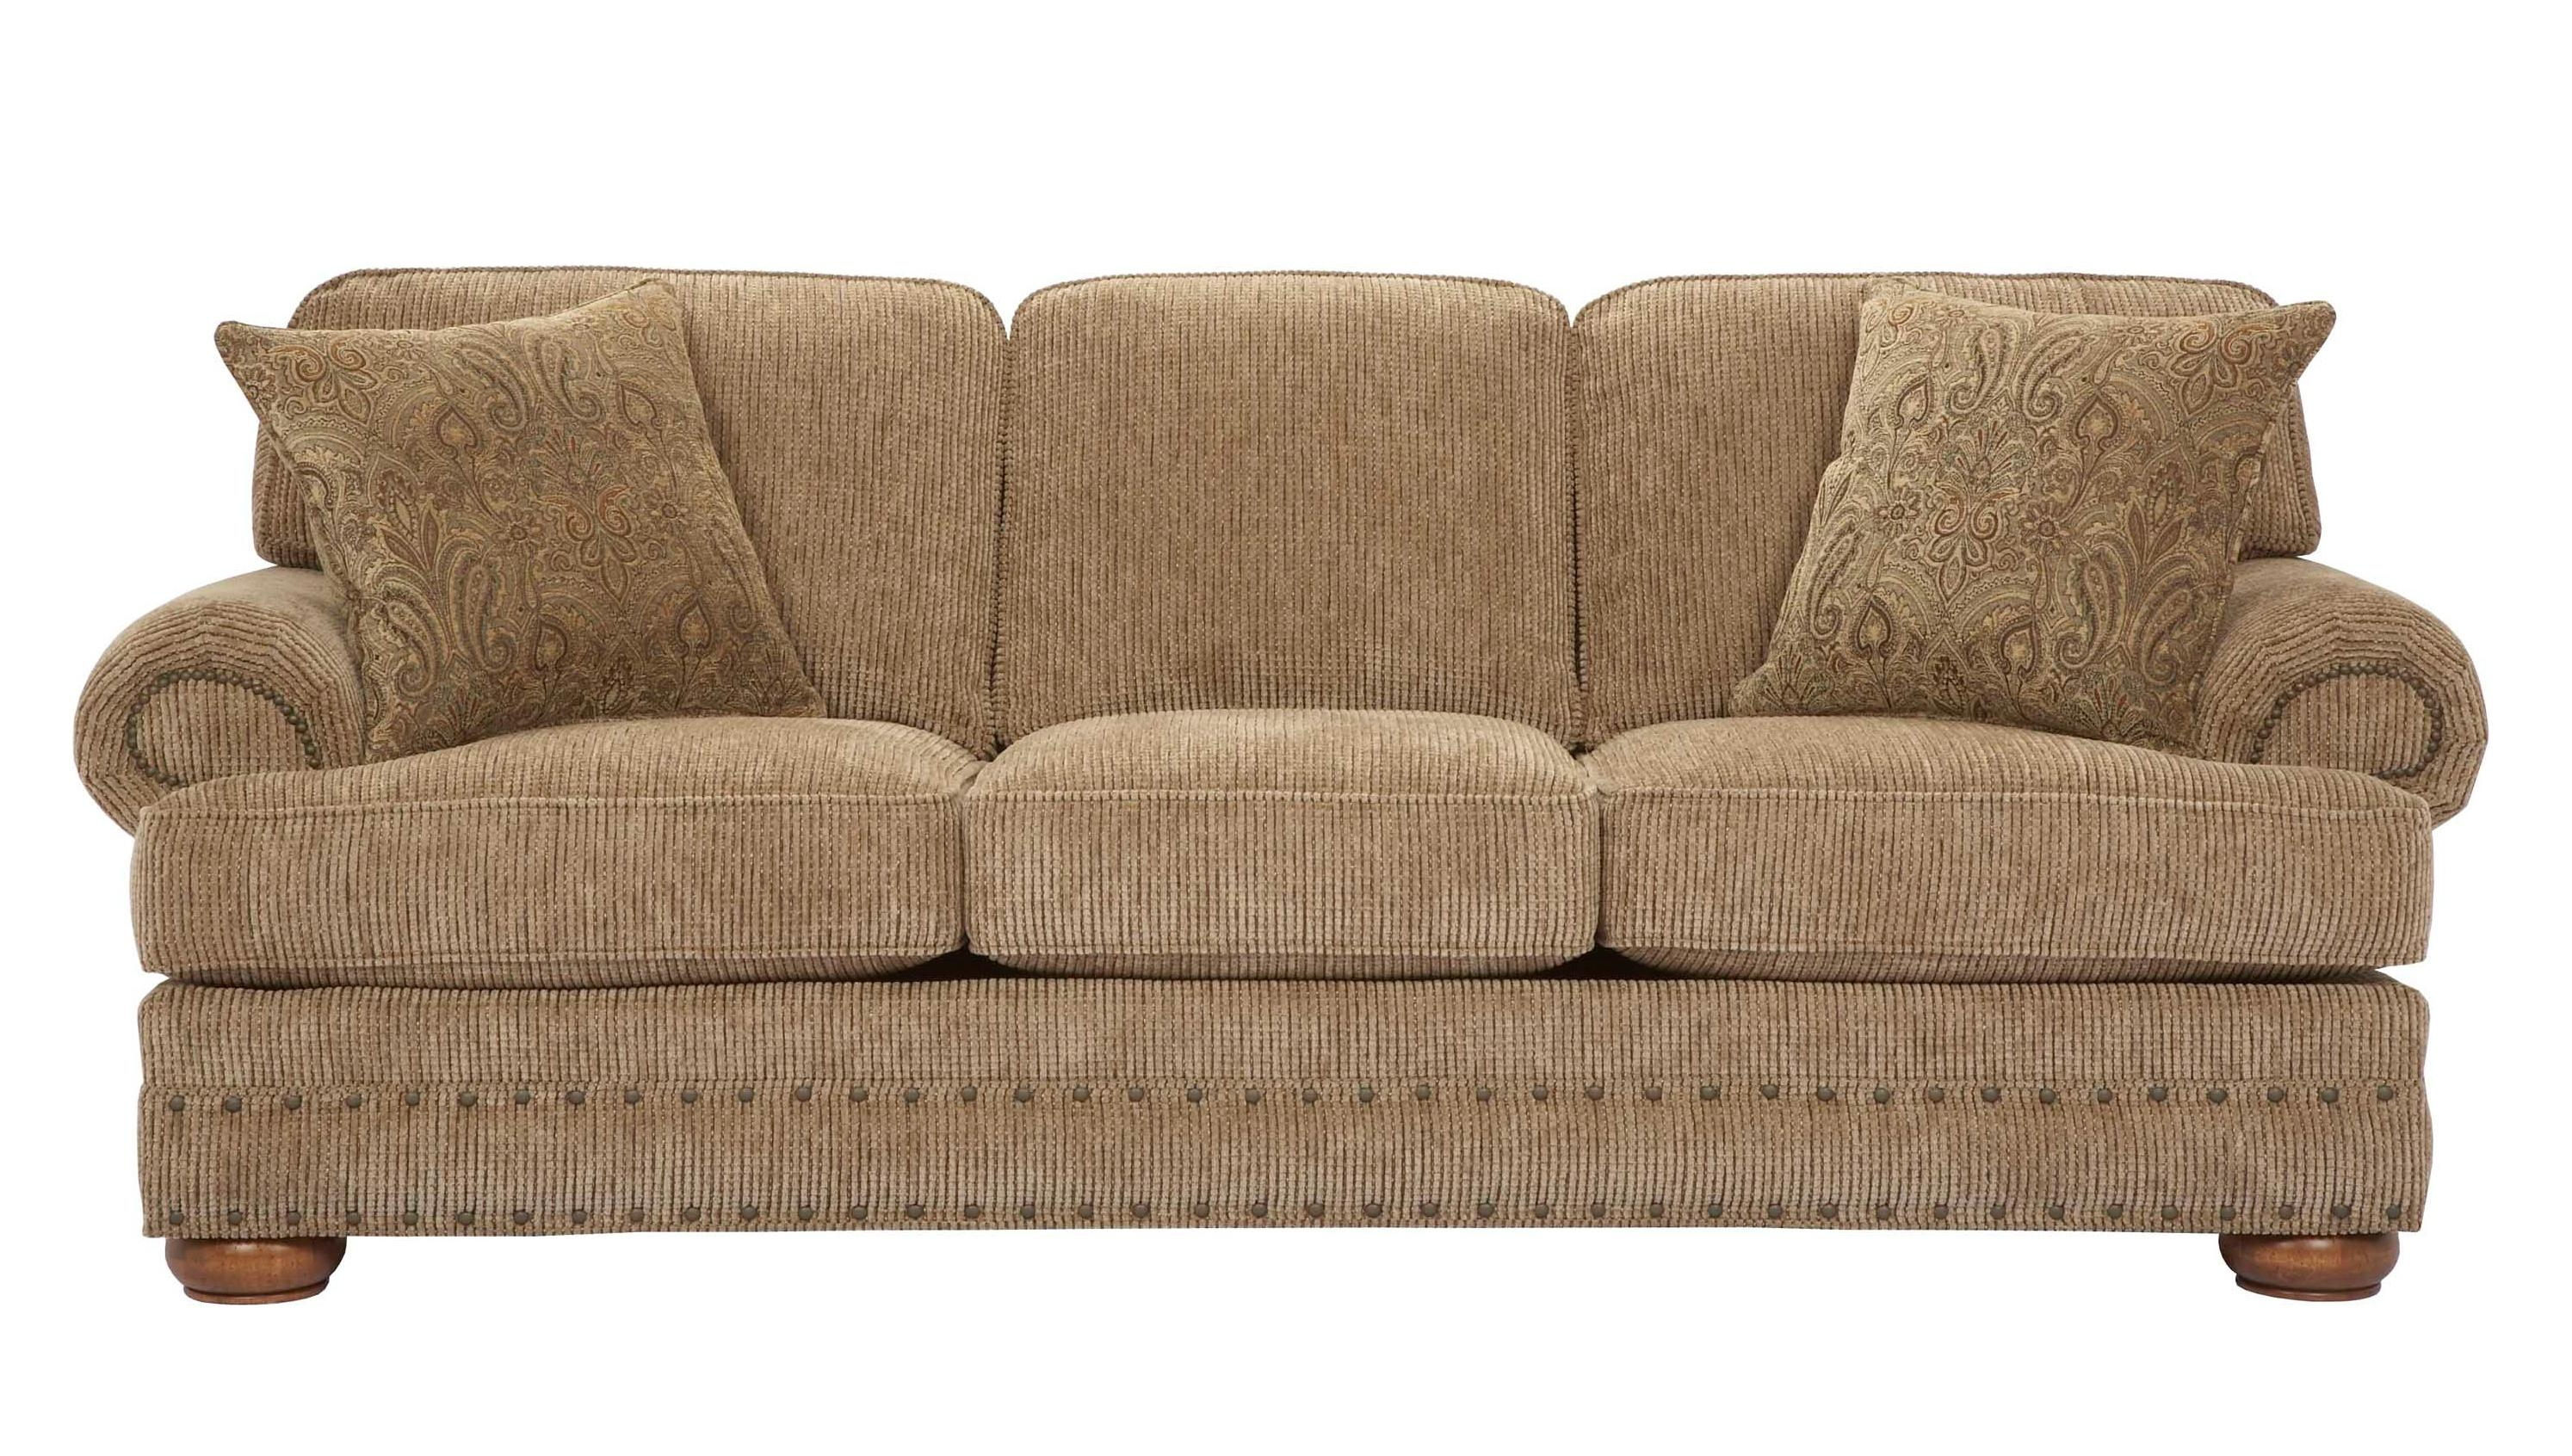 20 Ideas Of Broyhill Harrison Sofas Sofa Ideas